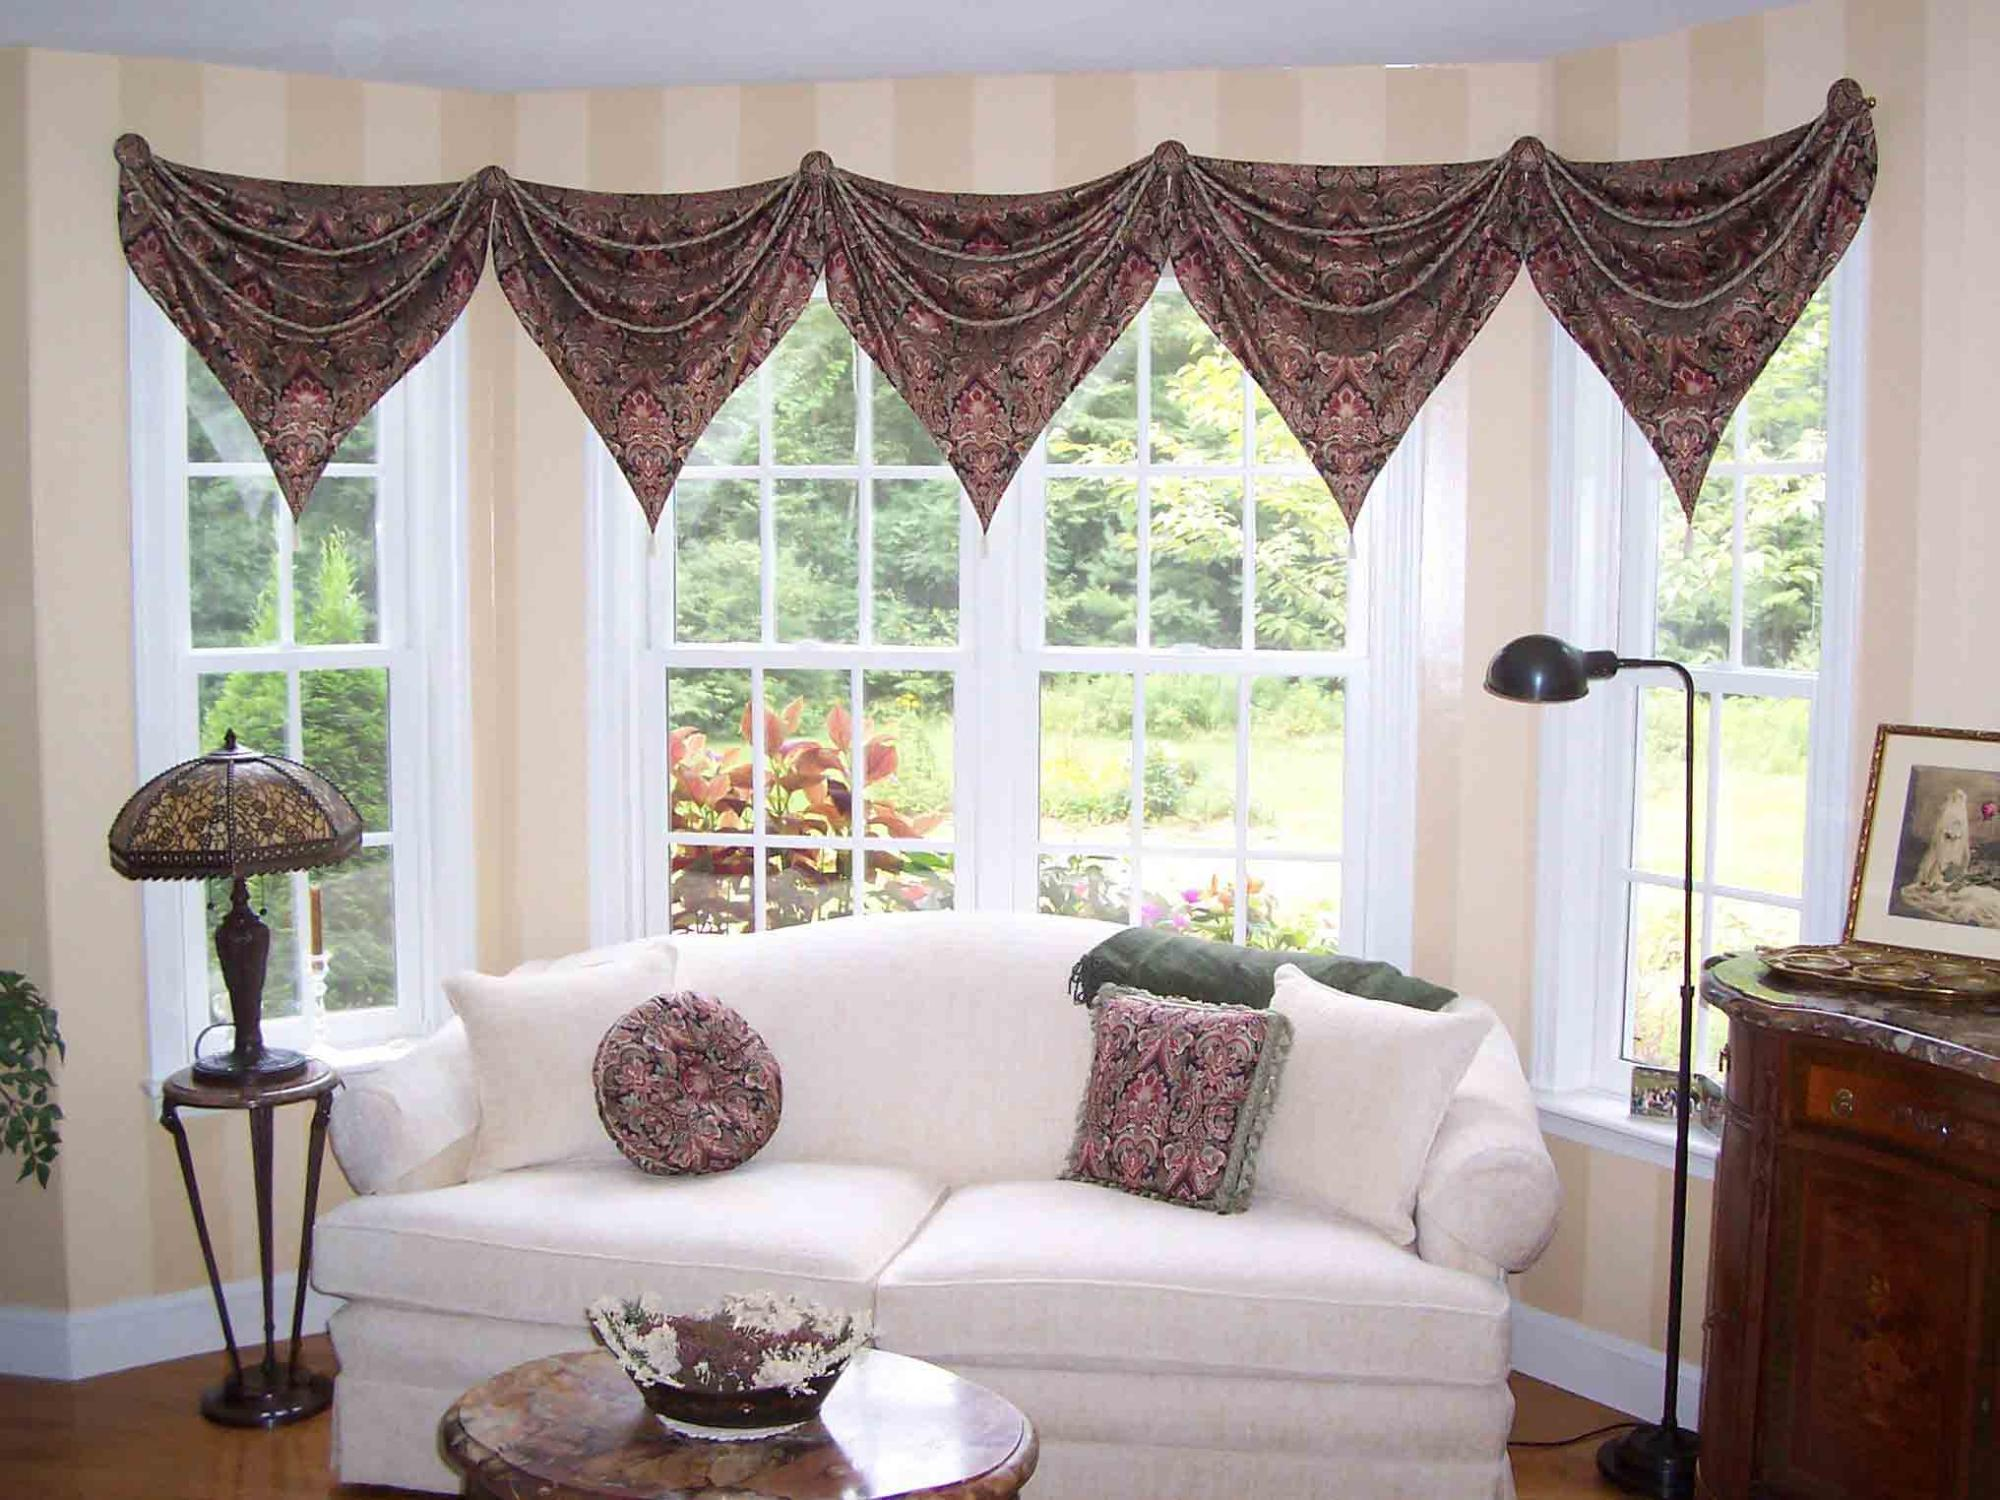 Teardrop Valance on Bay Window